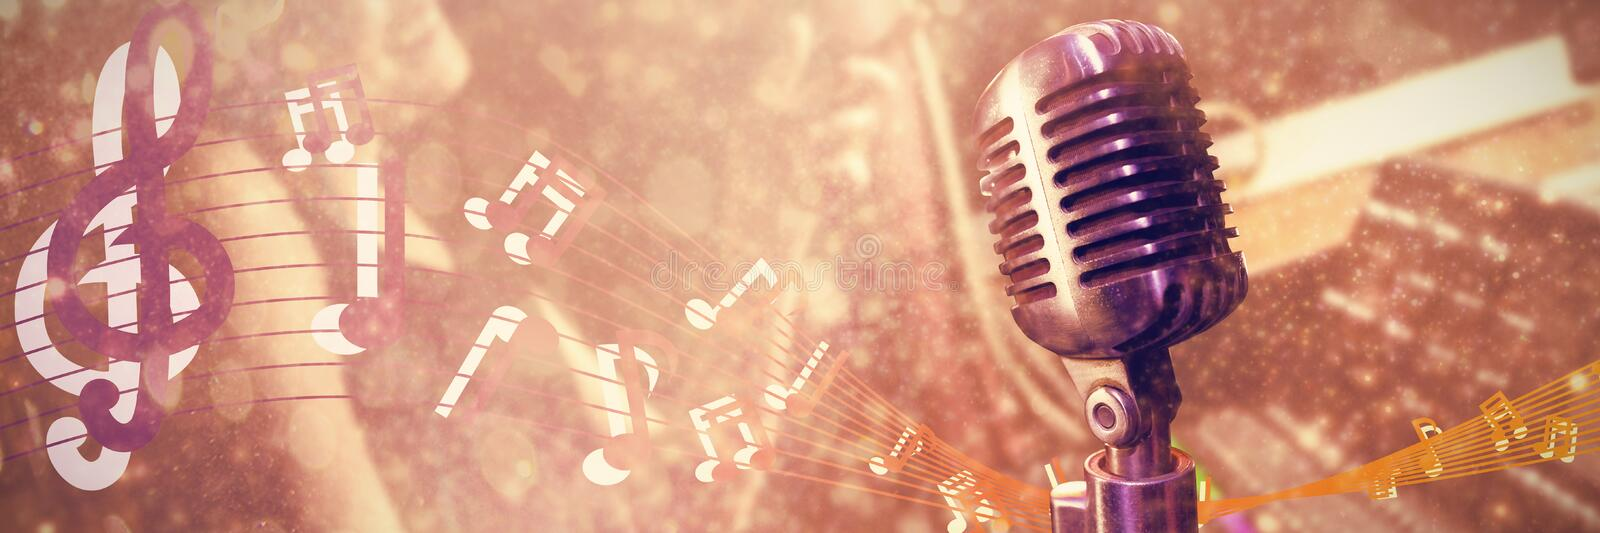 Composite image of close-up of microphone royalty free illustration